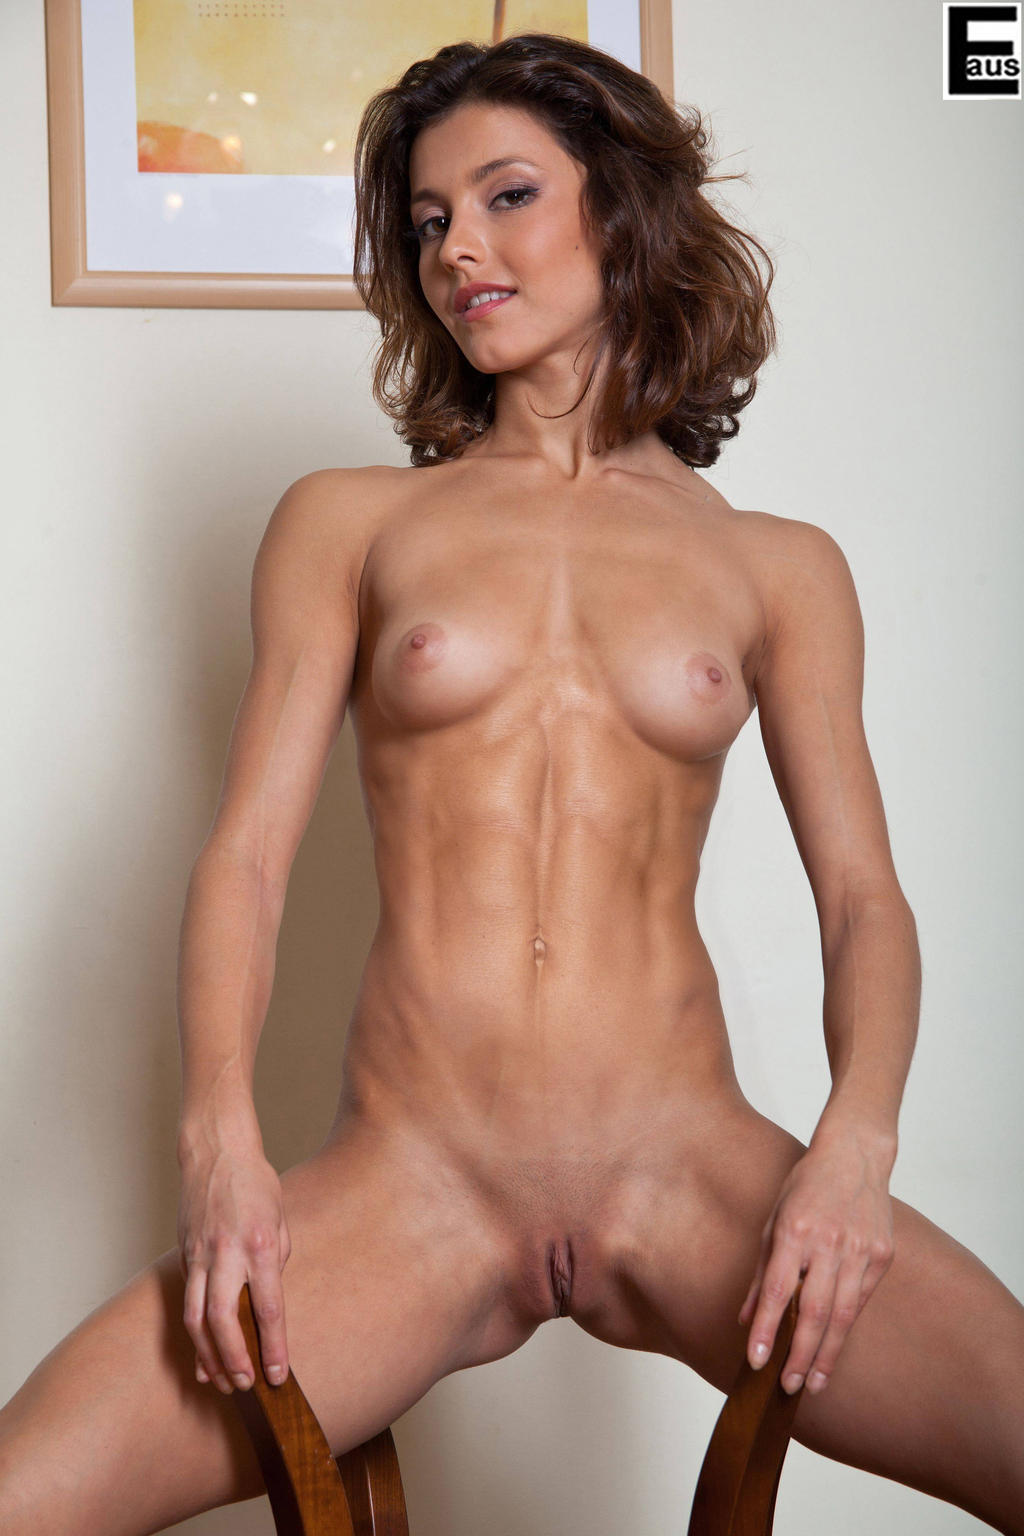 Ripped female nude-9264